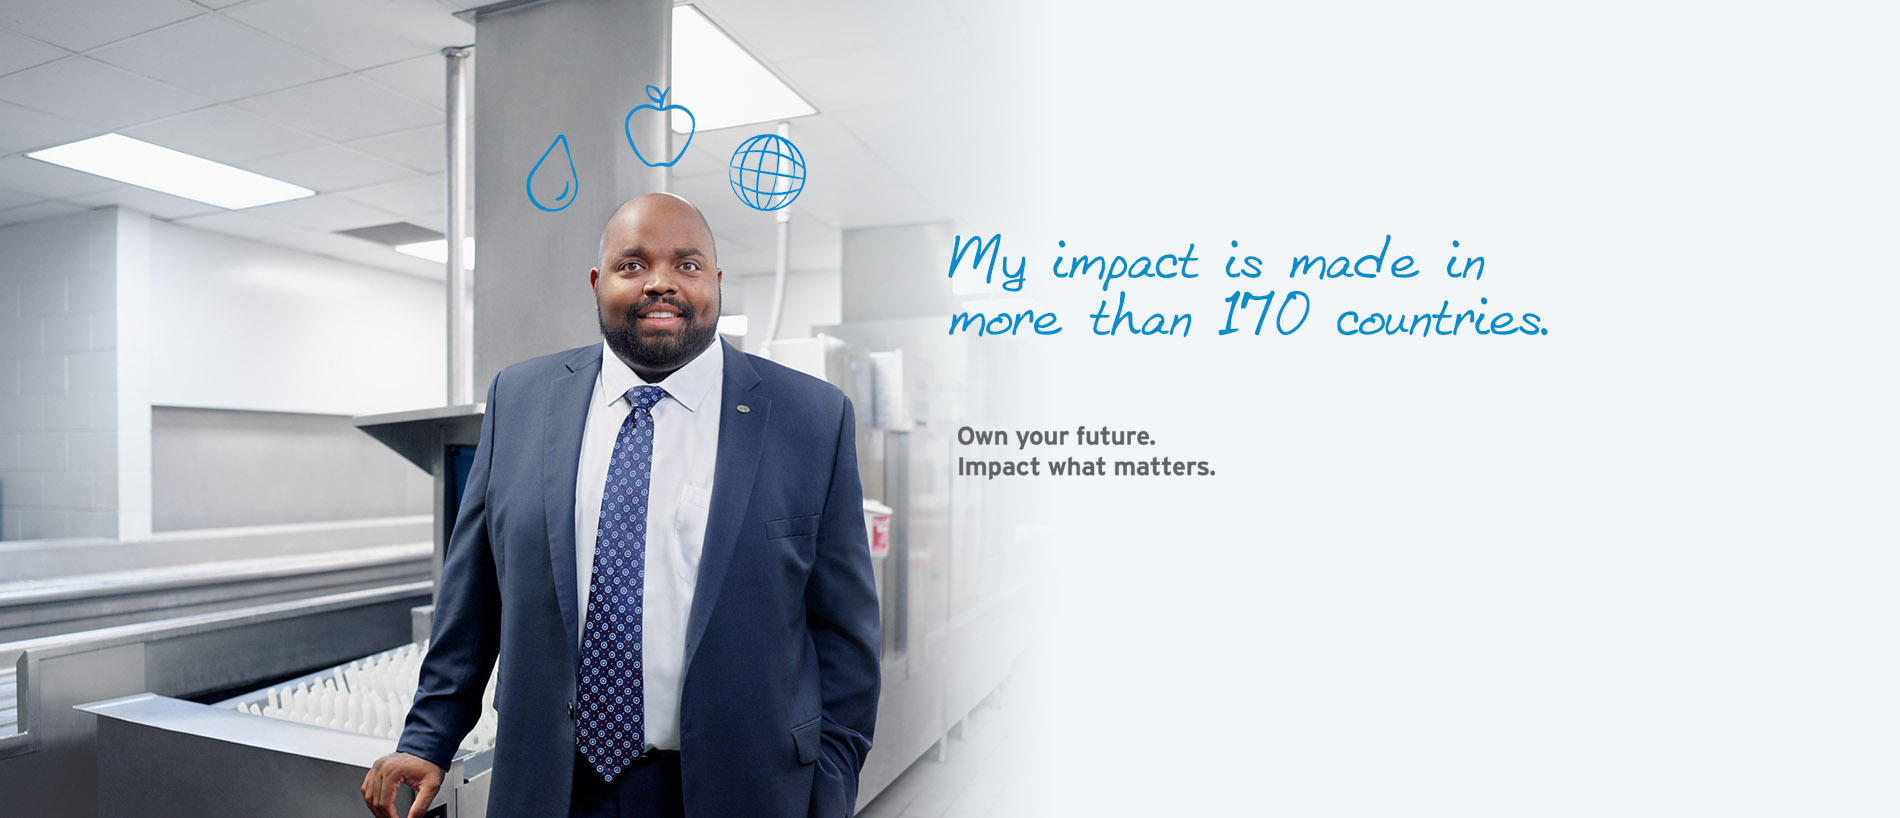 My impact is made in more than 170 countries. Own your future. Impact what matters.